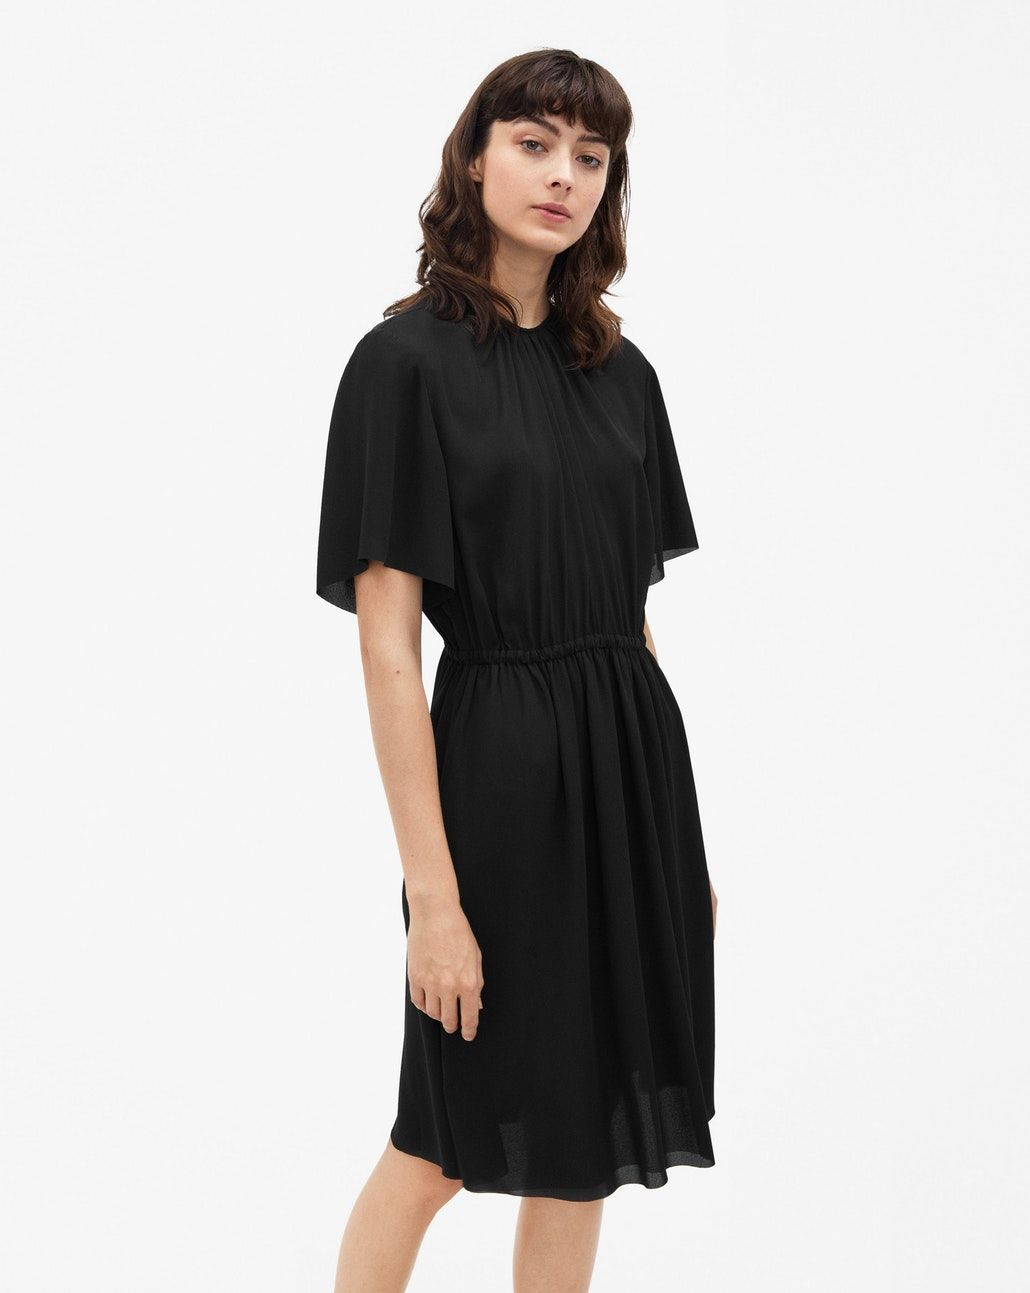 6481227f8 Filippa K, Flattering Dresses, Design Research, Crepe Dress, Dress Black, Gw